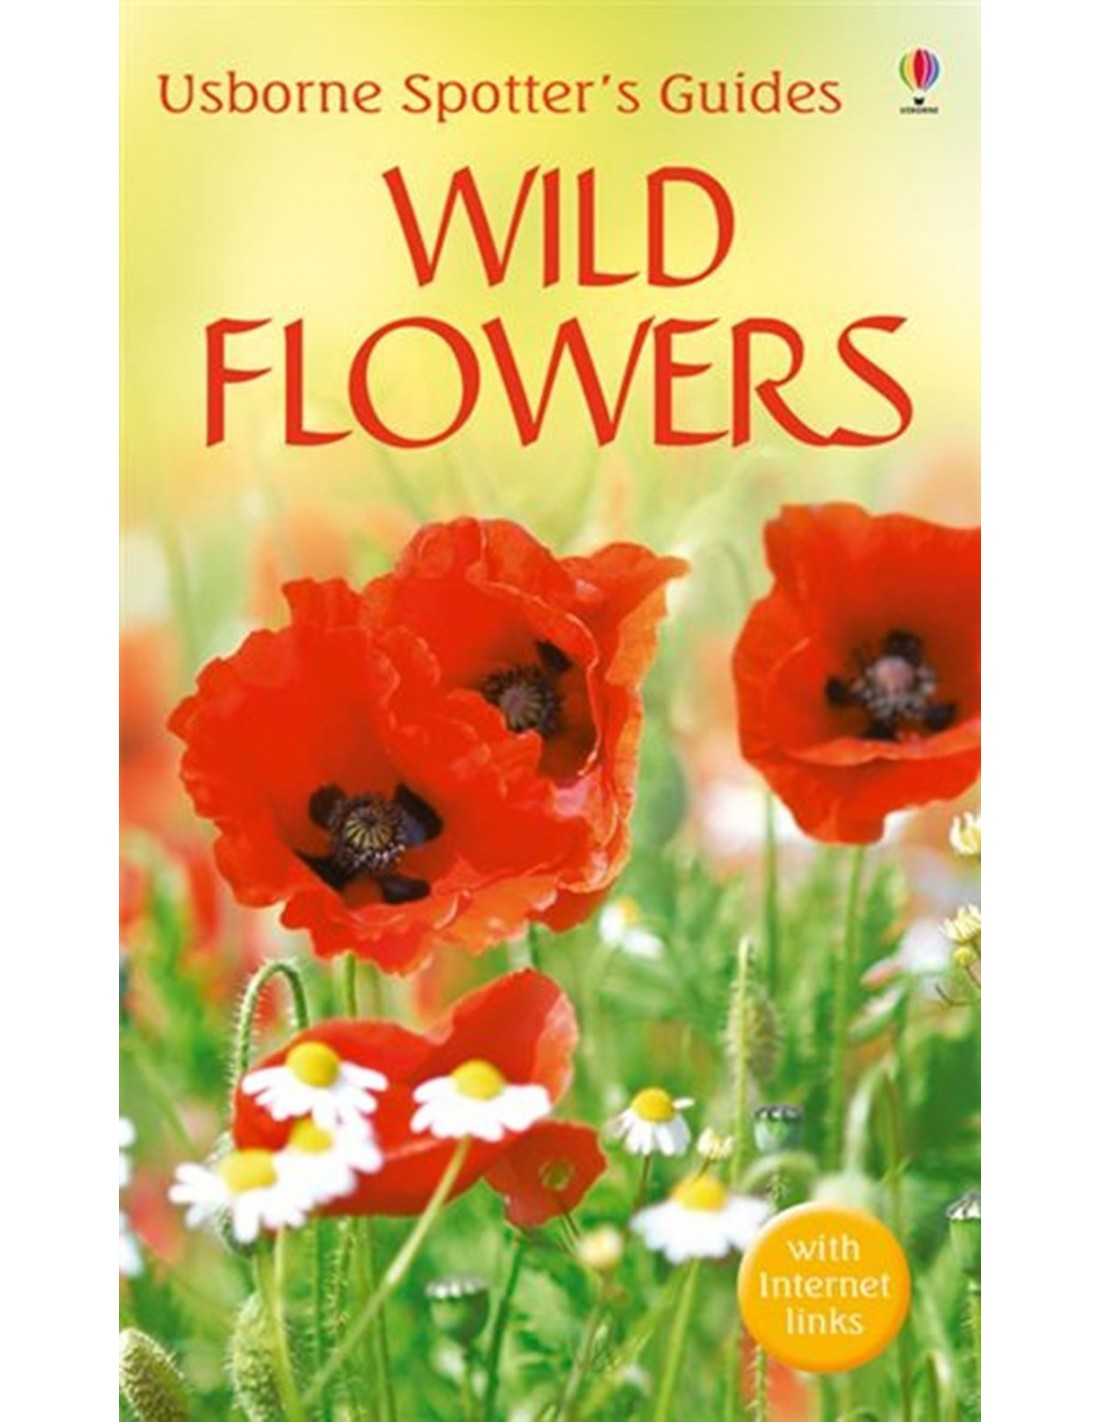 Spotter's Guides: Wild flowers